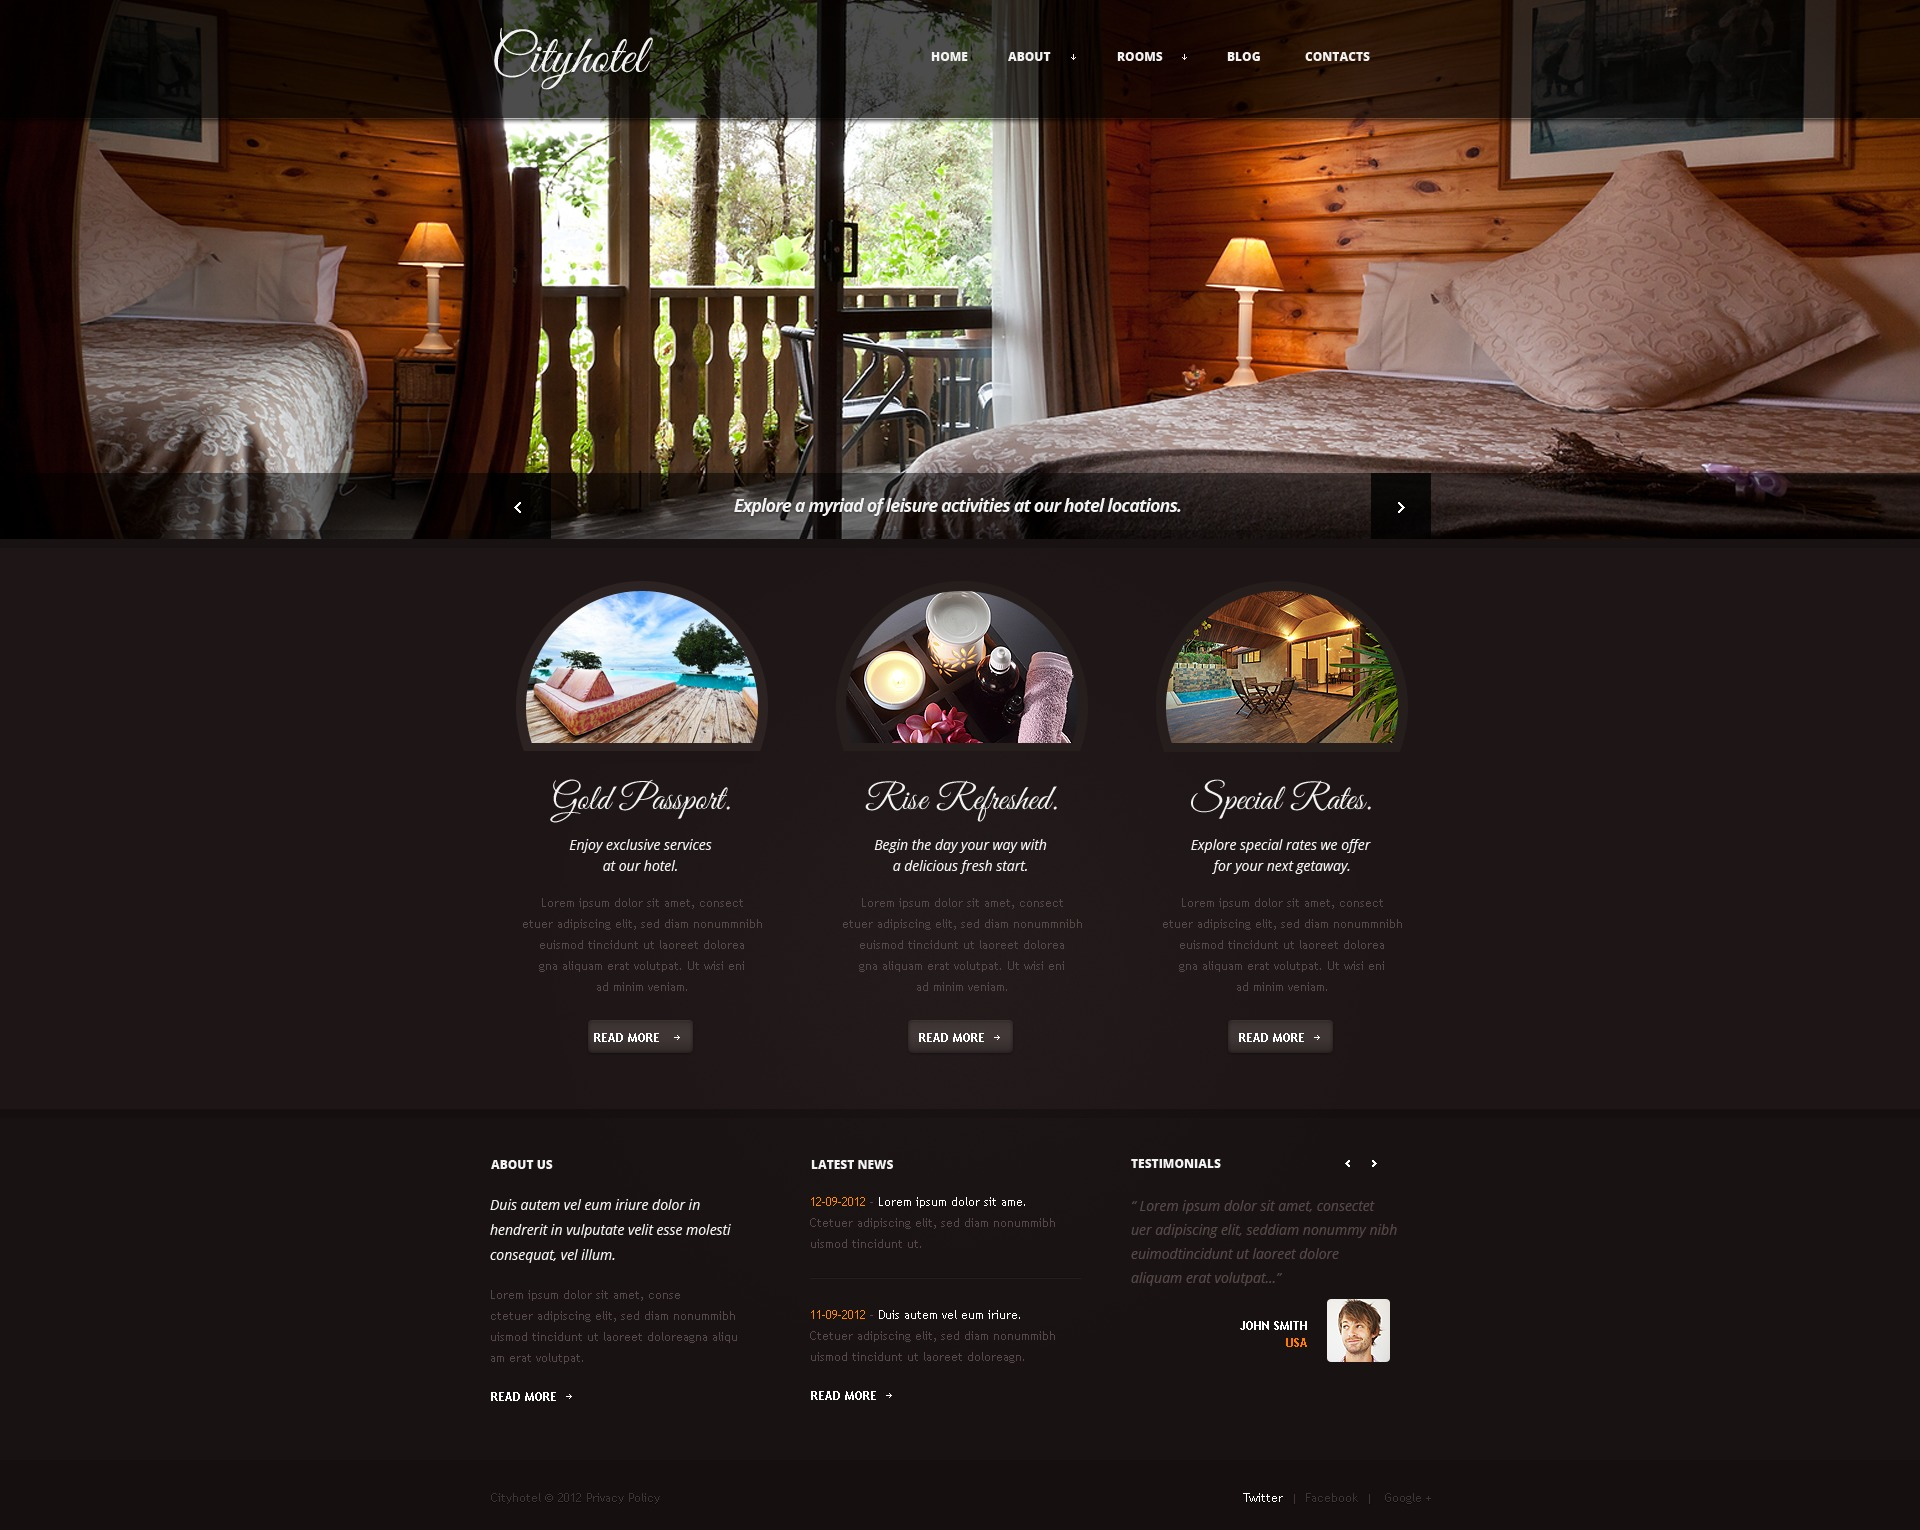 Download Free Hotel Website Template Freakify Com: Hotels Joomla Template #39685